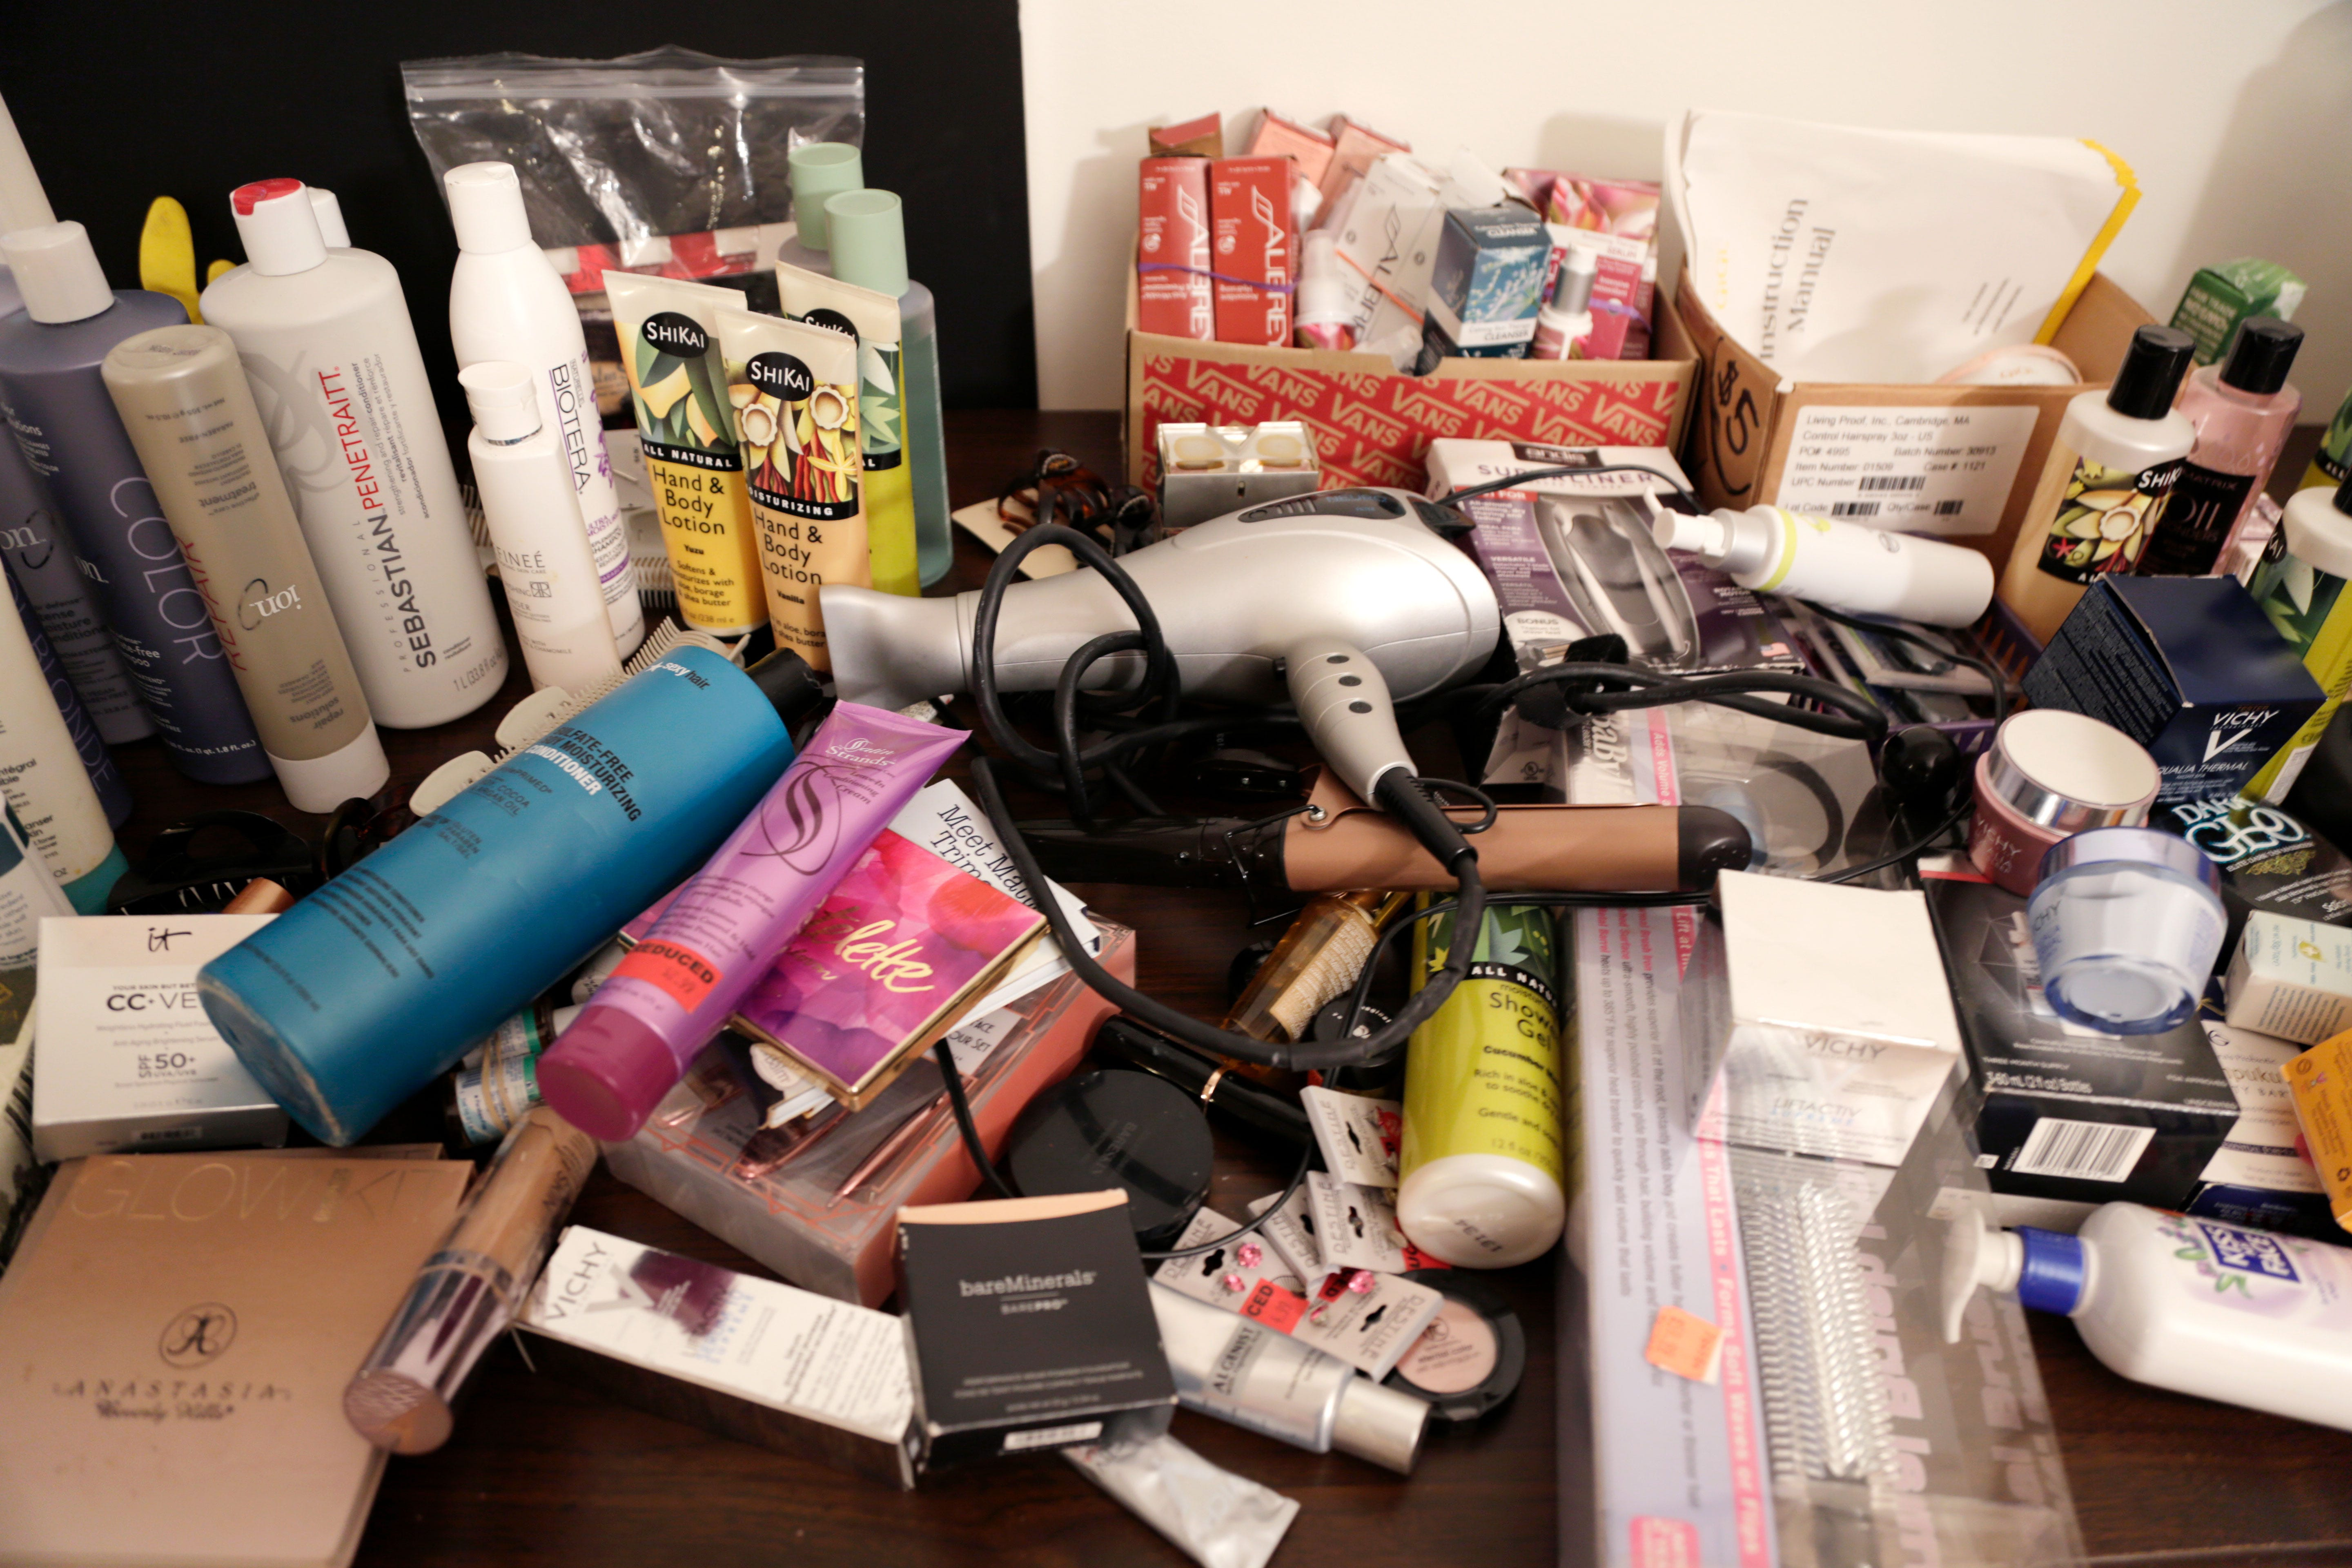 Beauty Product Dumpster Diving Points To Waste Problems